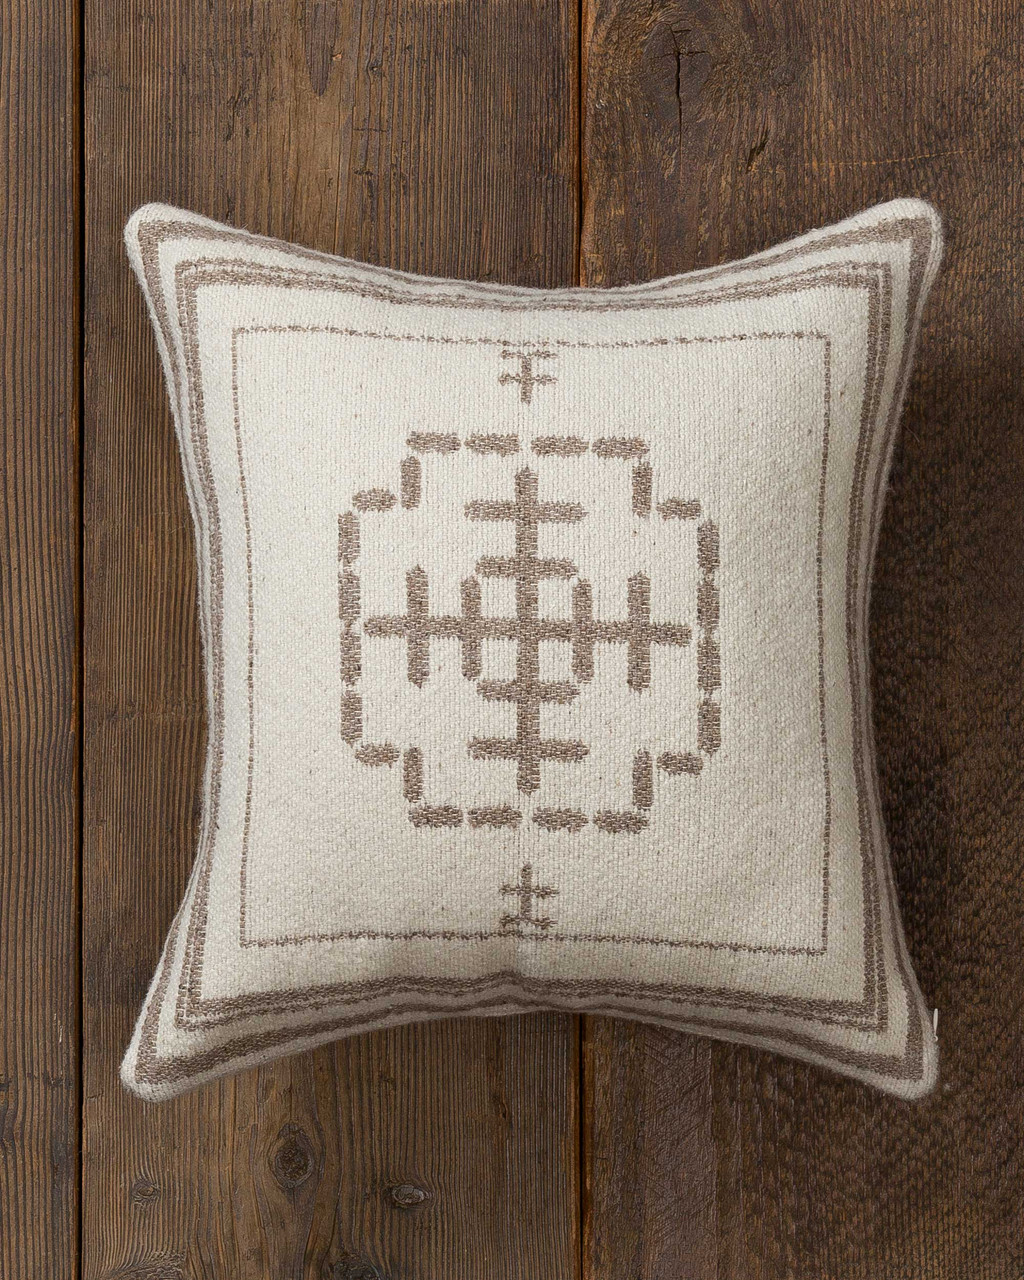 Alicia Adams Alpaca Mazing Accent Pillow, alpaca tribal pillow, alpaca indian pillow, alpaca bed pillow, ivory and taupe bicolor alpaca accent pillow